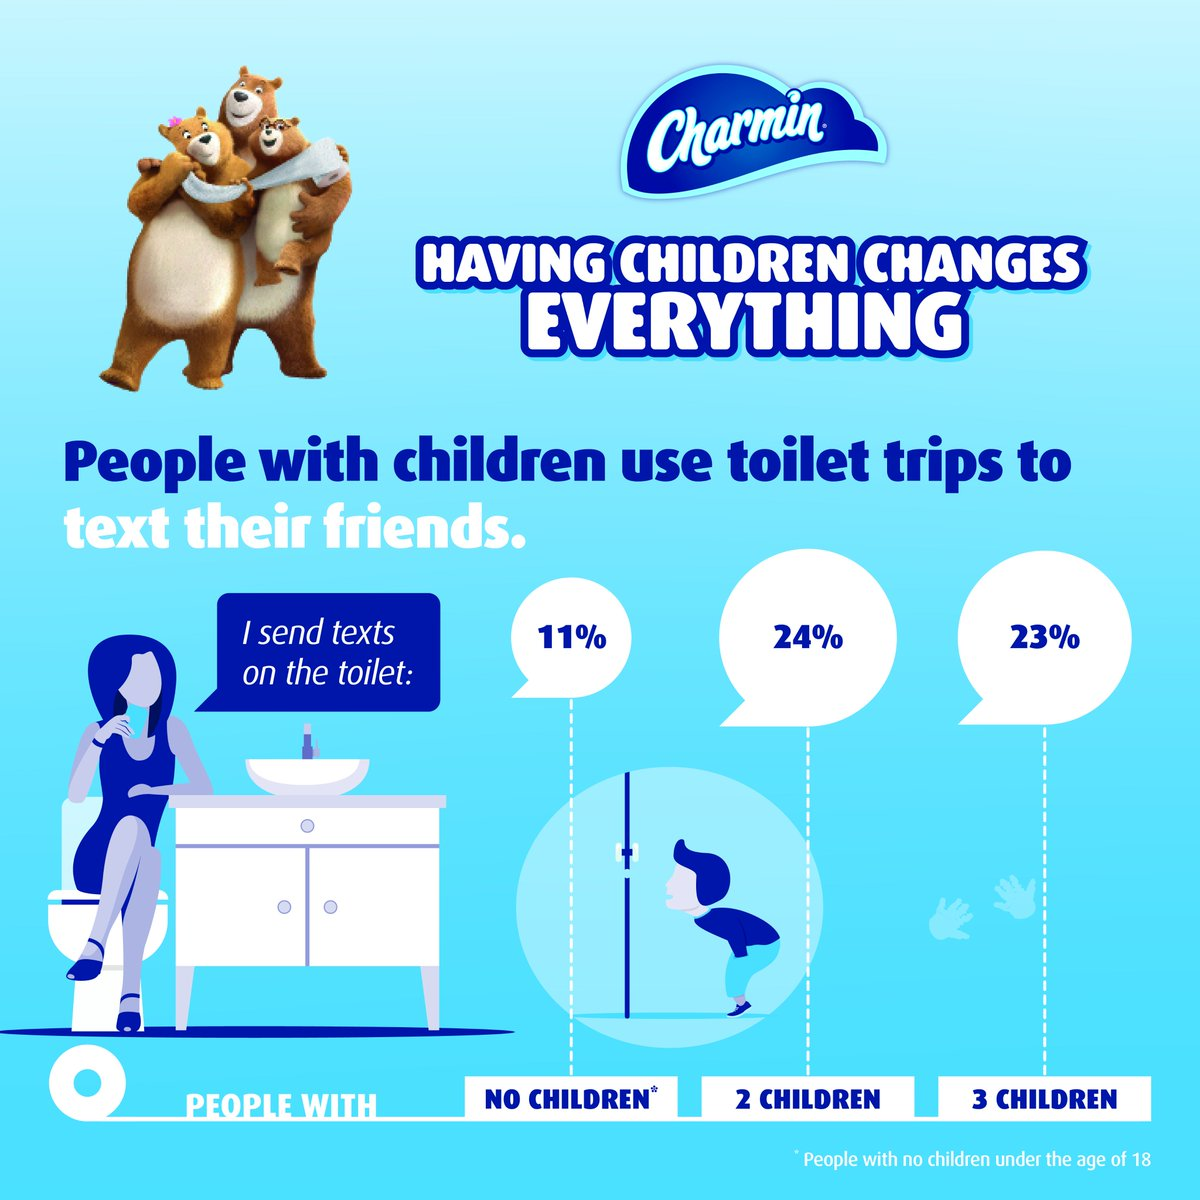 10 years ago  the bathroom was forever changed  Thanks smartphone for  ushering in the age of the  TweetFromTheSeat pic twitter com OTLjEMvdzw. Charmin   Charmin    Twitter